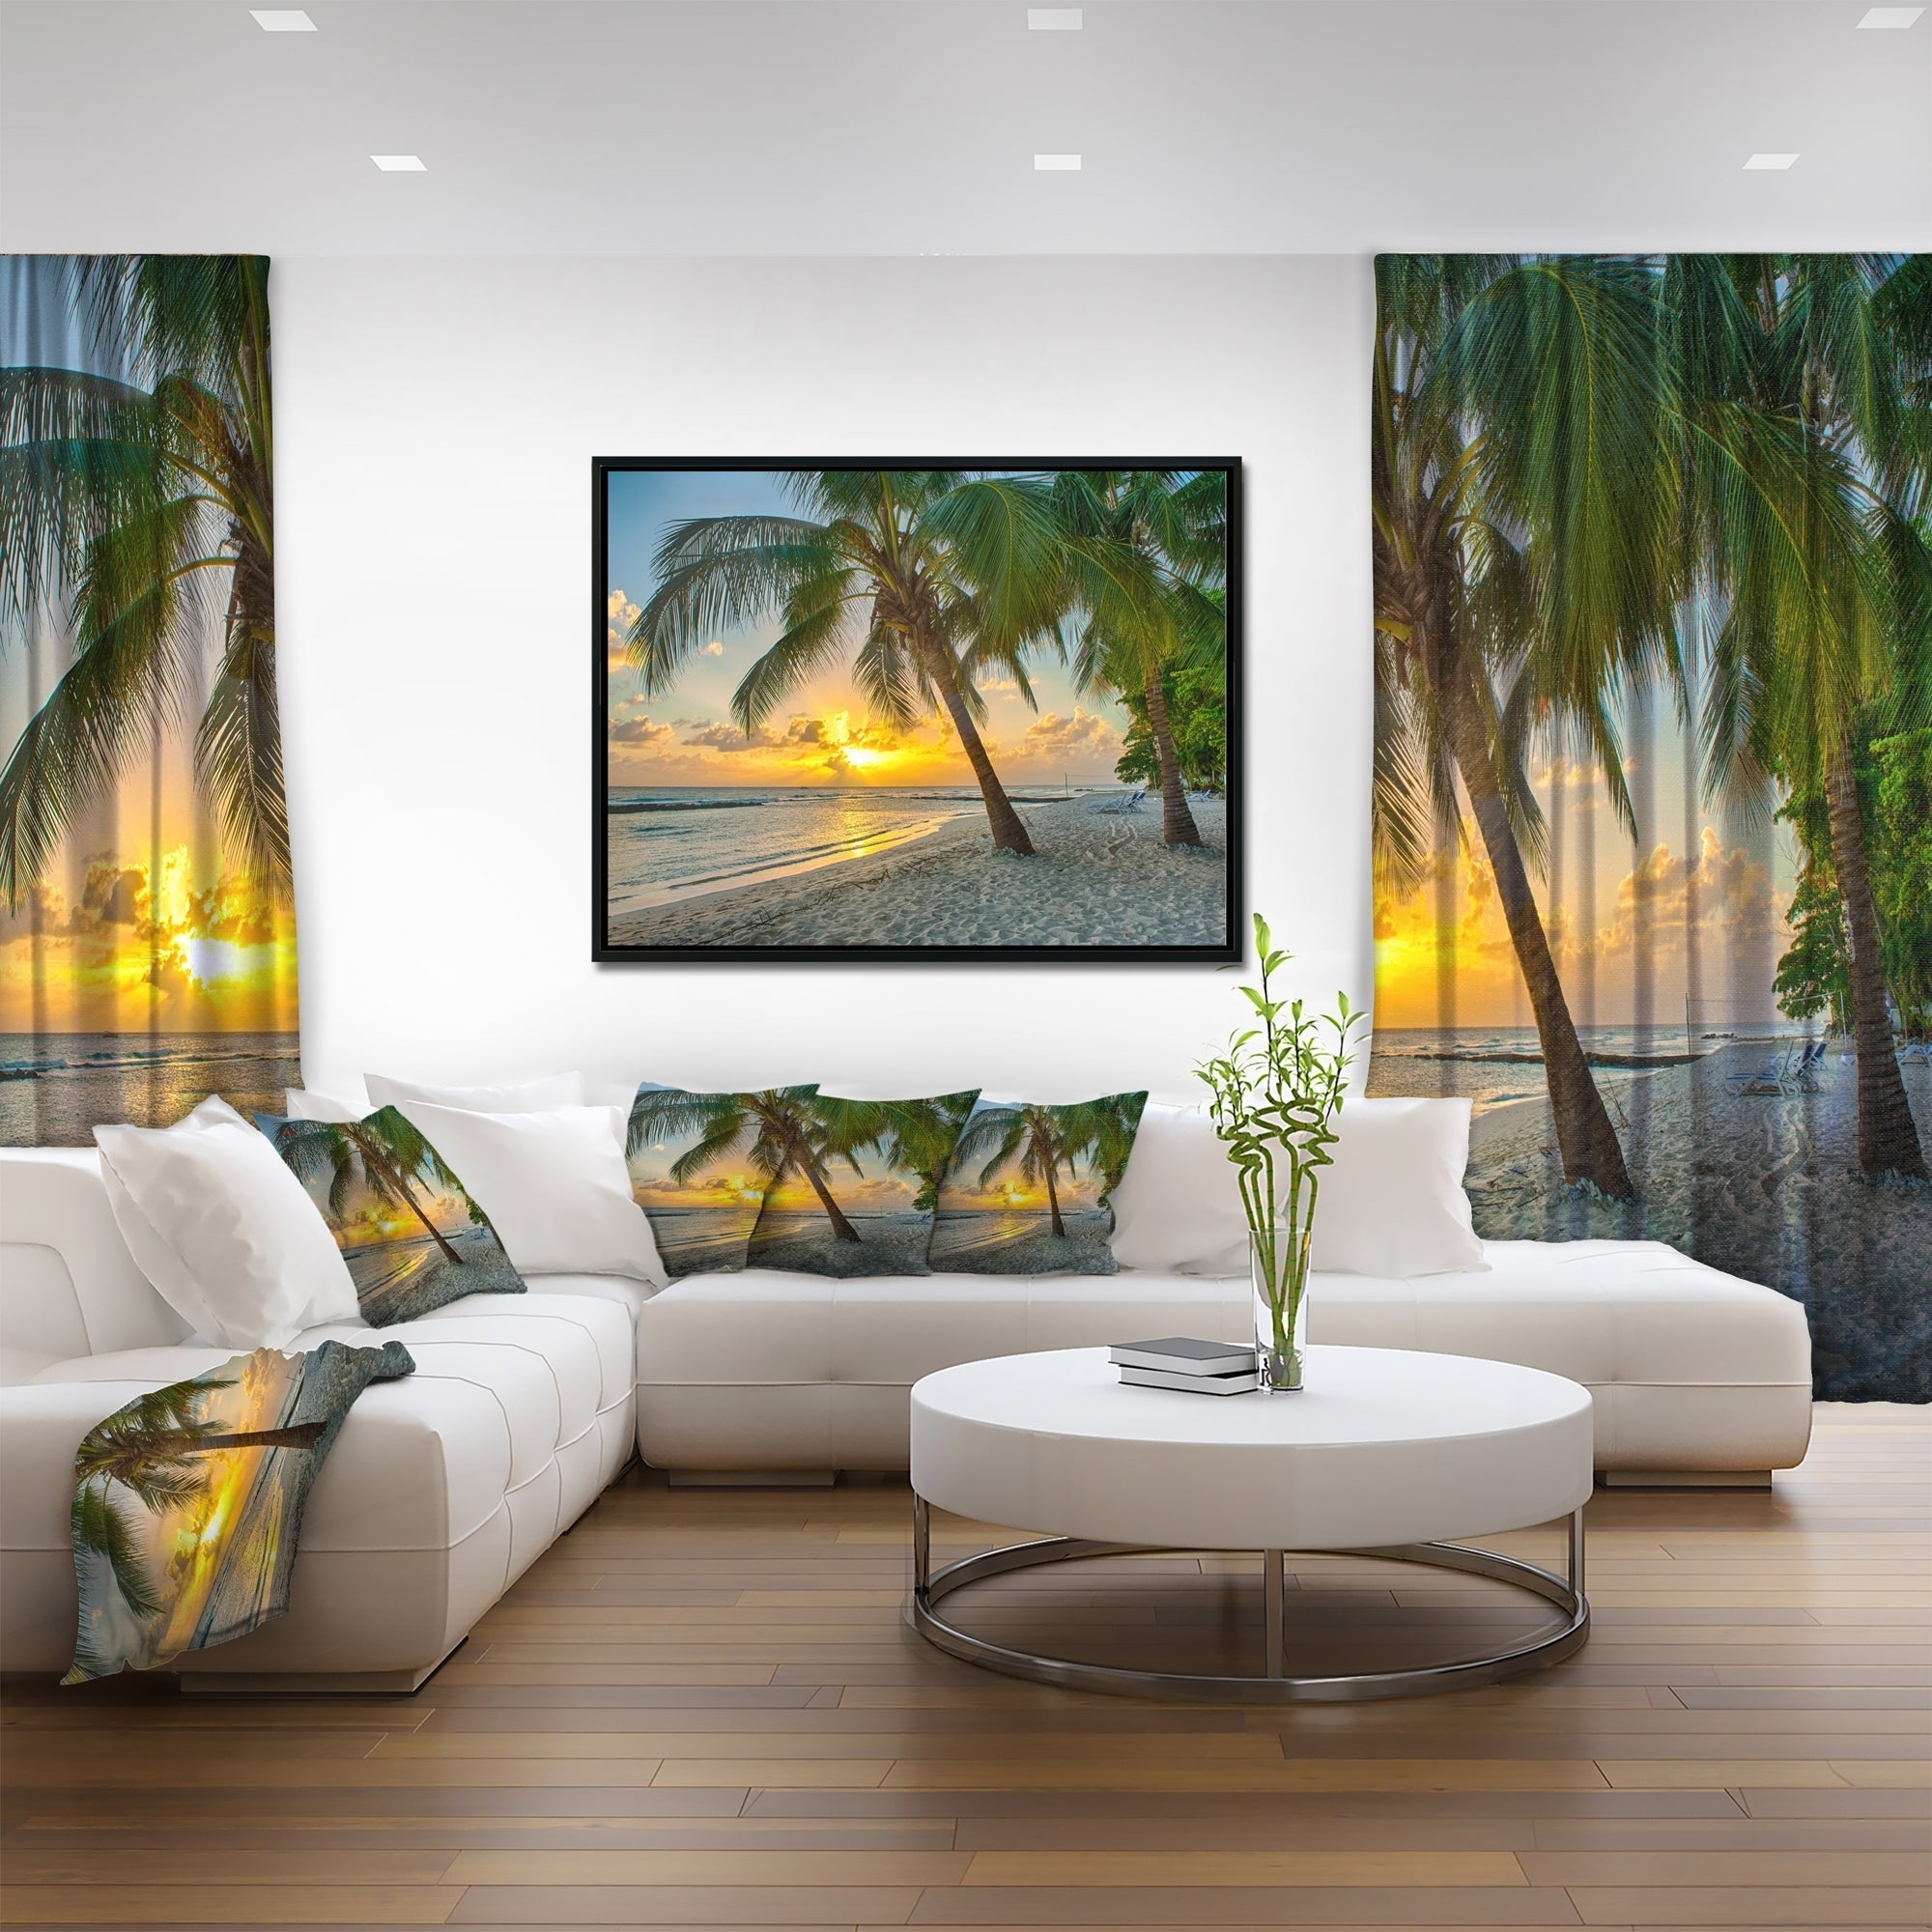 b2dcabf8d4 Shop Designart 'Beach in Caribbean Island of Barbados' Modern Seascape  Framed Canvas Artwork - On Sale - Free Shipping Today - Overstock - 18957906